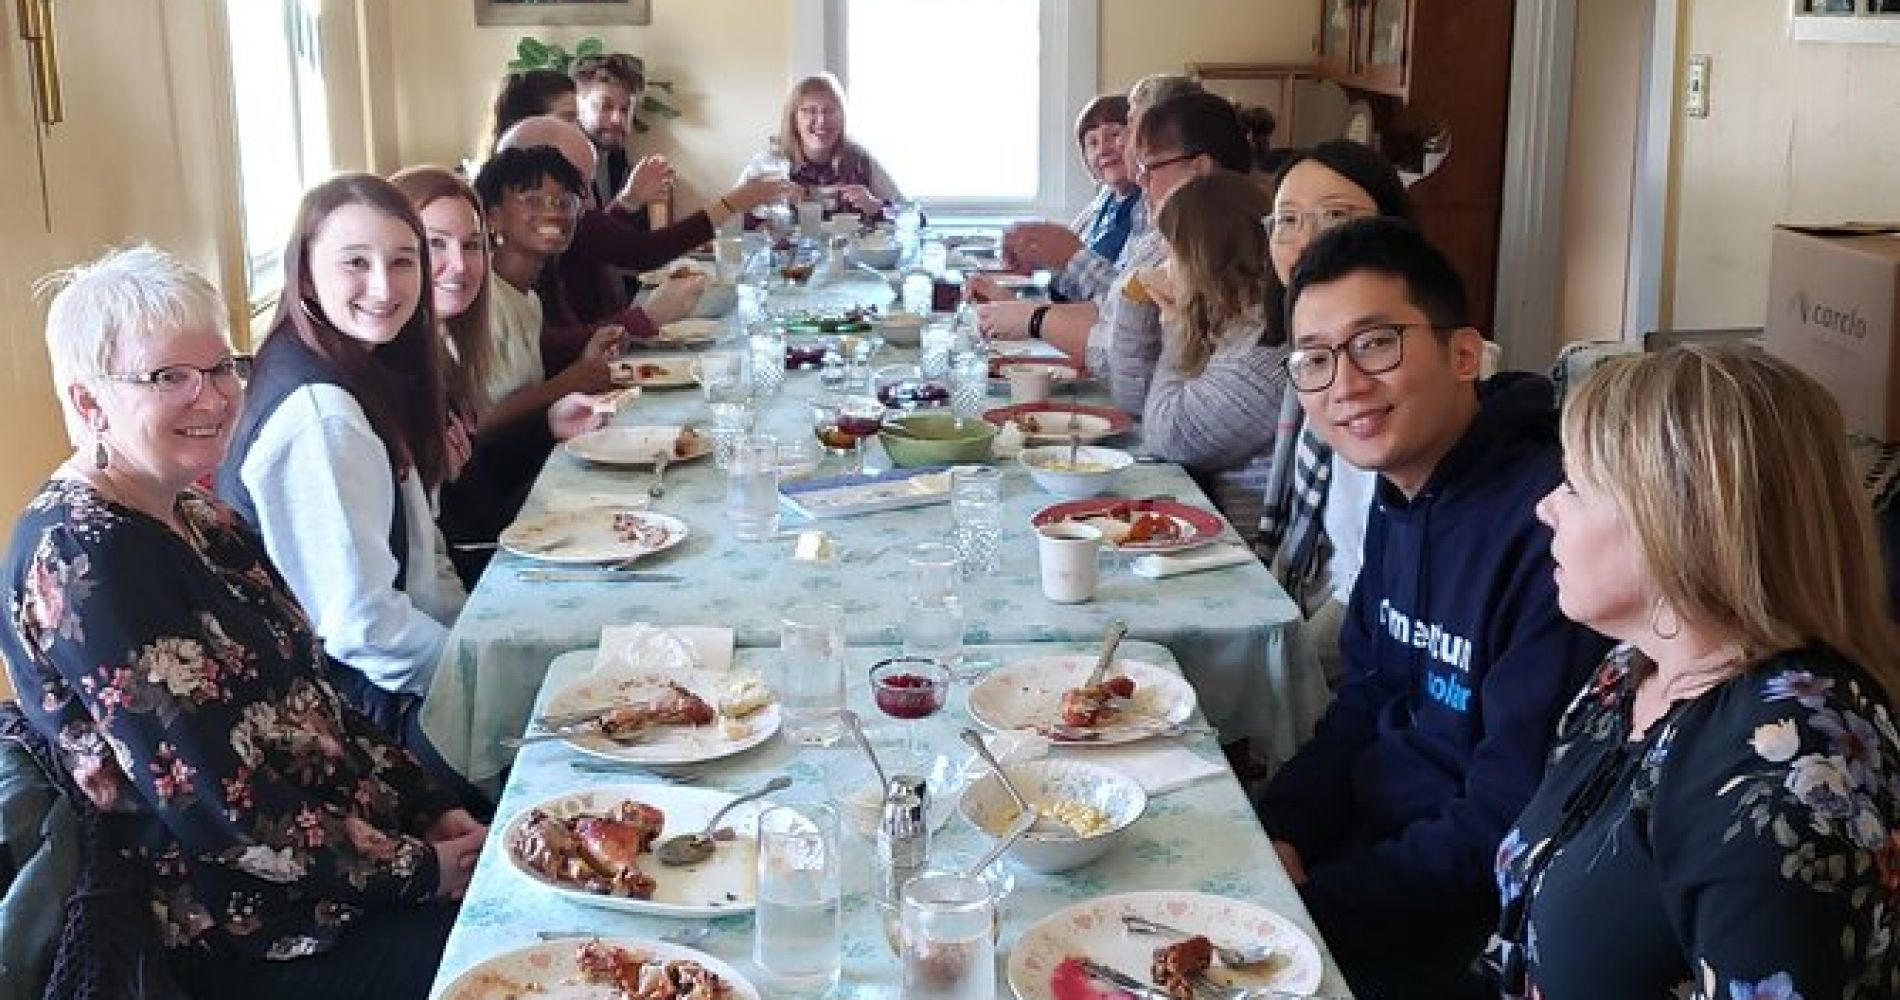 Authentic Tour & Meal with an Amish Family!